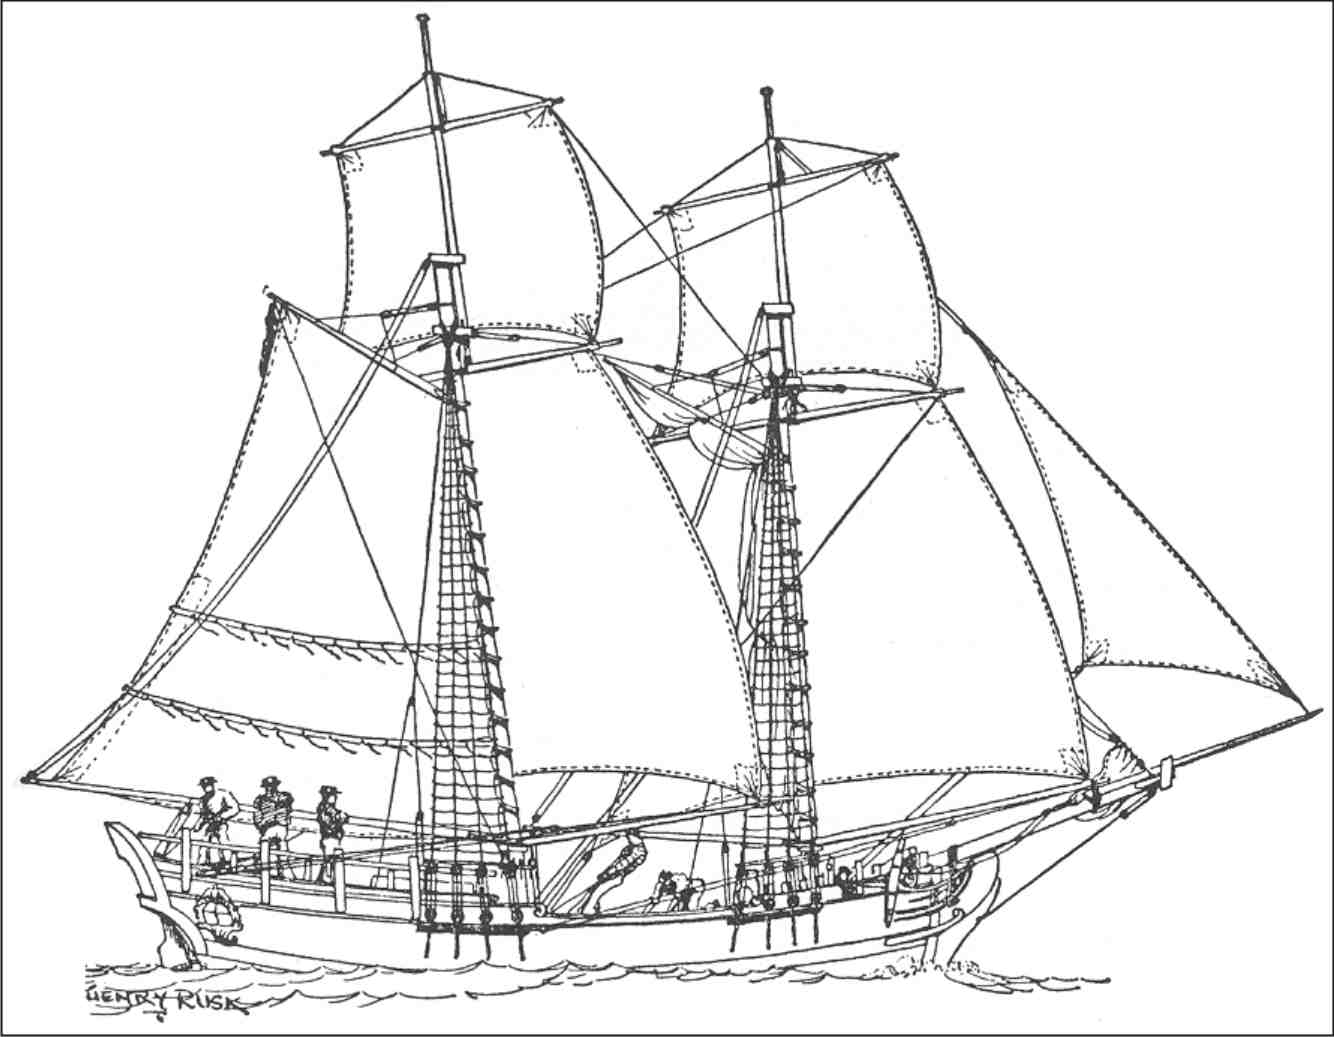 Uss constitution drawing at getdrawings free for personal use 1334x1037 line drawing of harley davidson malvernweather Gallery